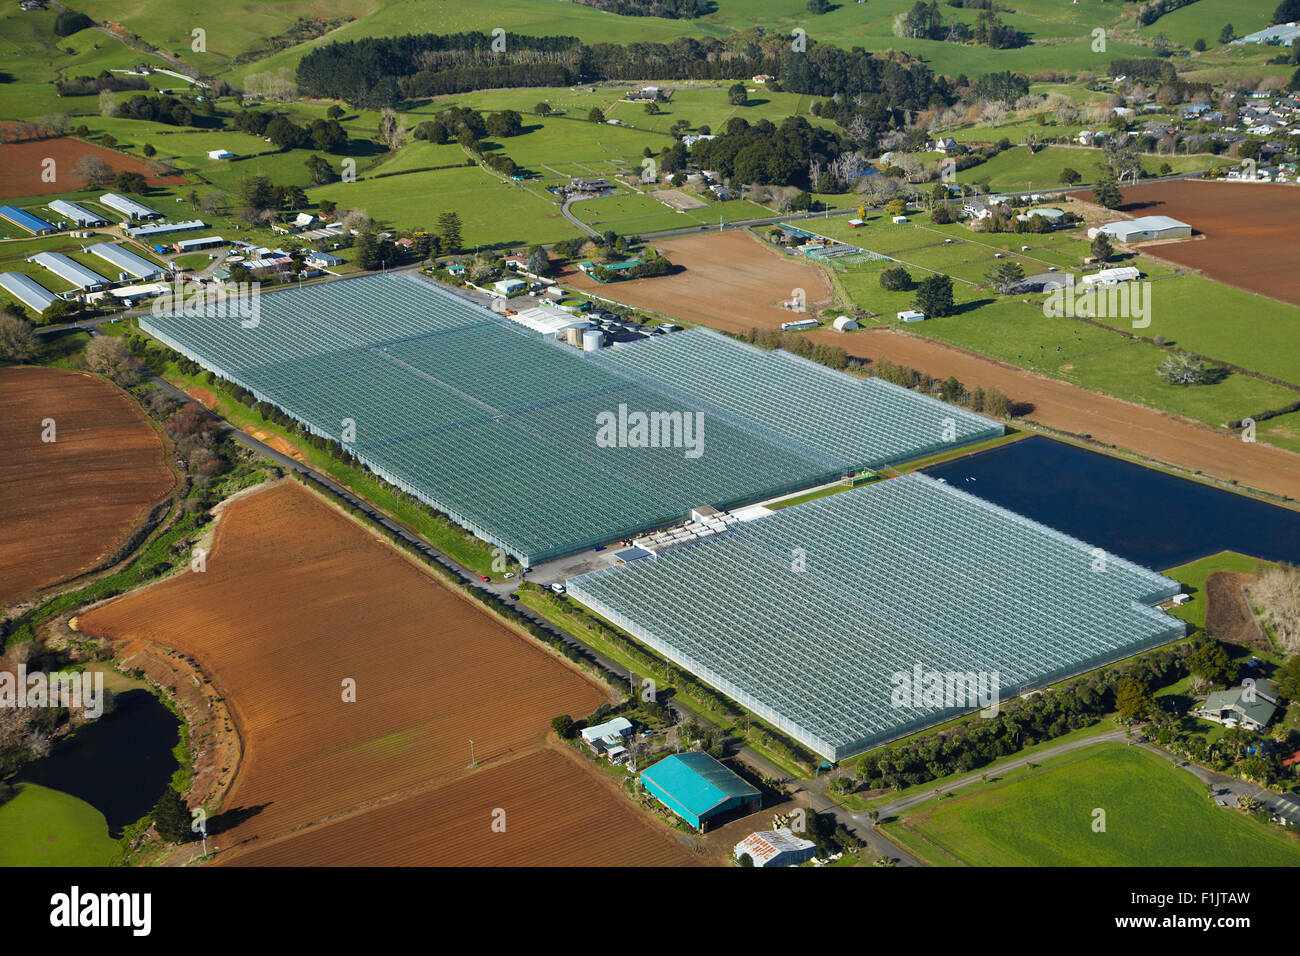 Status Produce glasshouses near Pukekohe, South Auckland, North Island, New Zealand - aerial - Stock Image